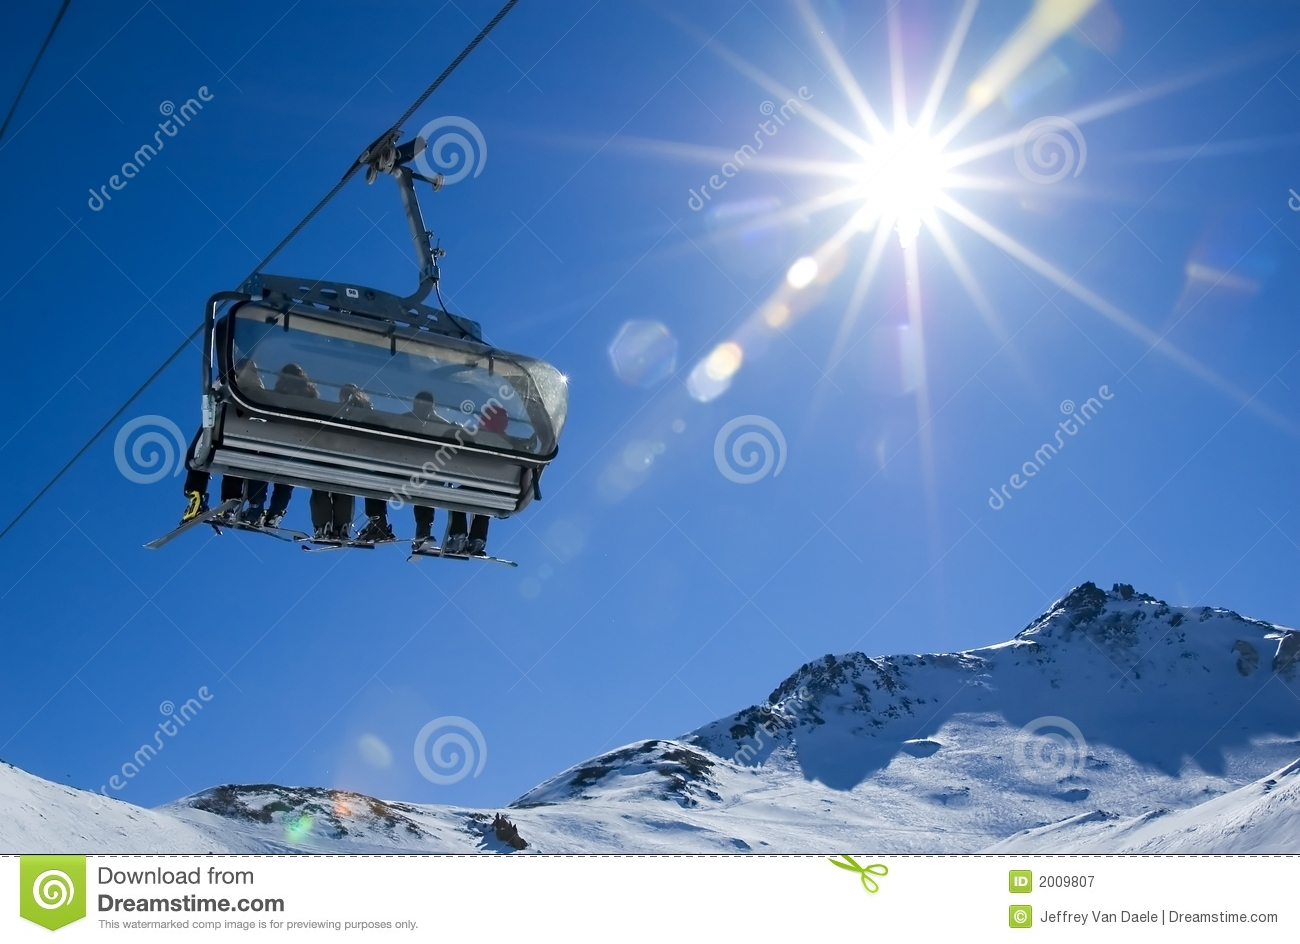 Skiers in a chairlift